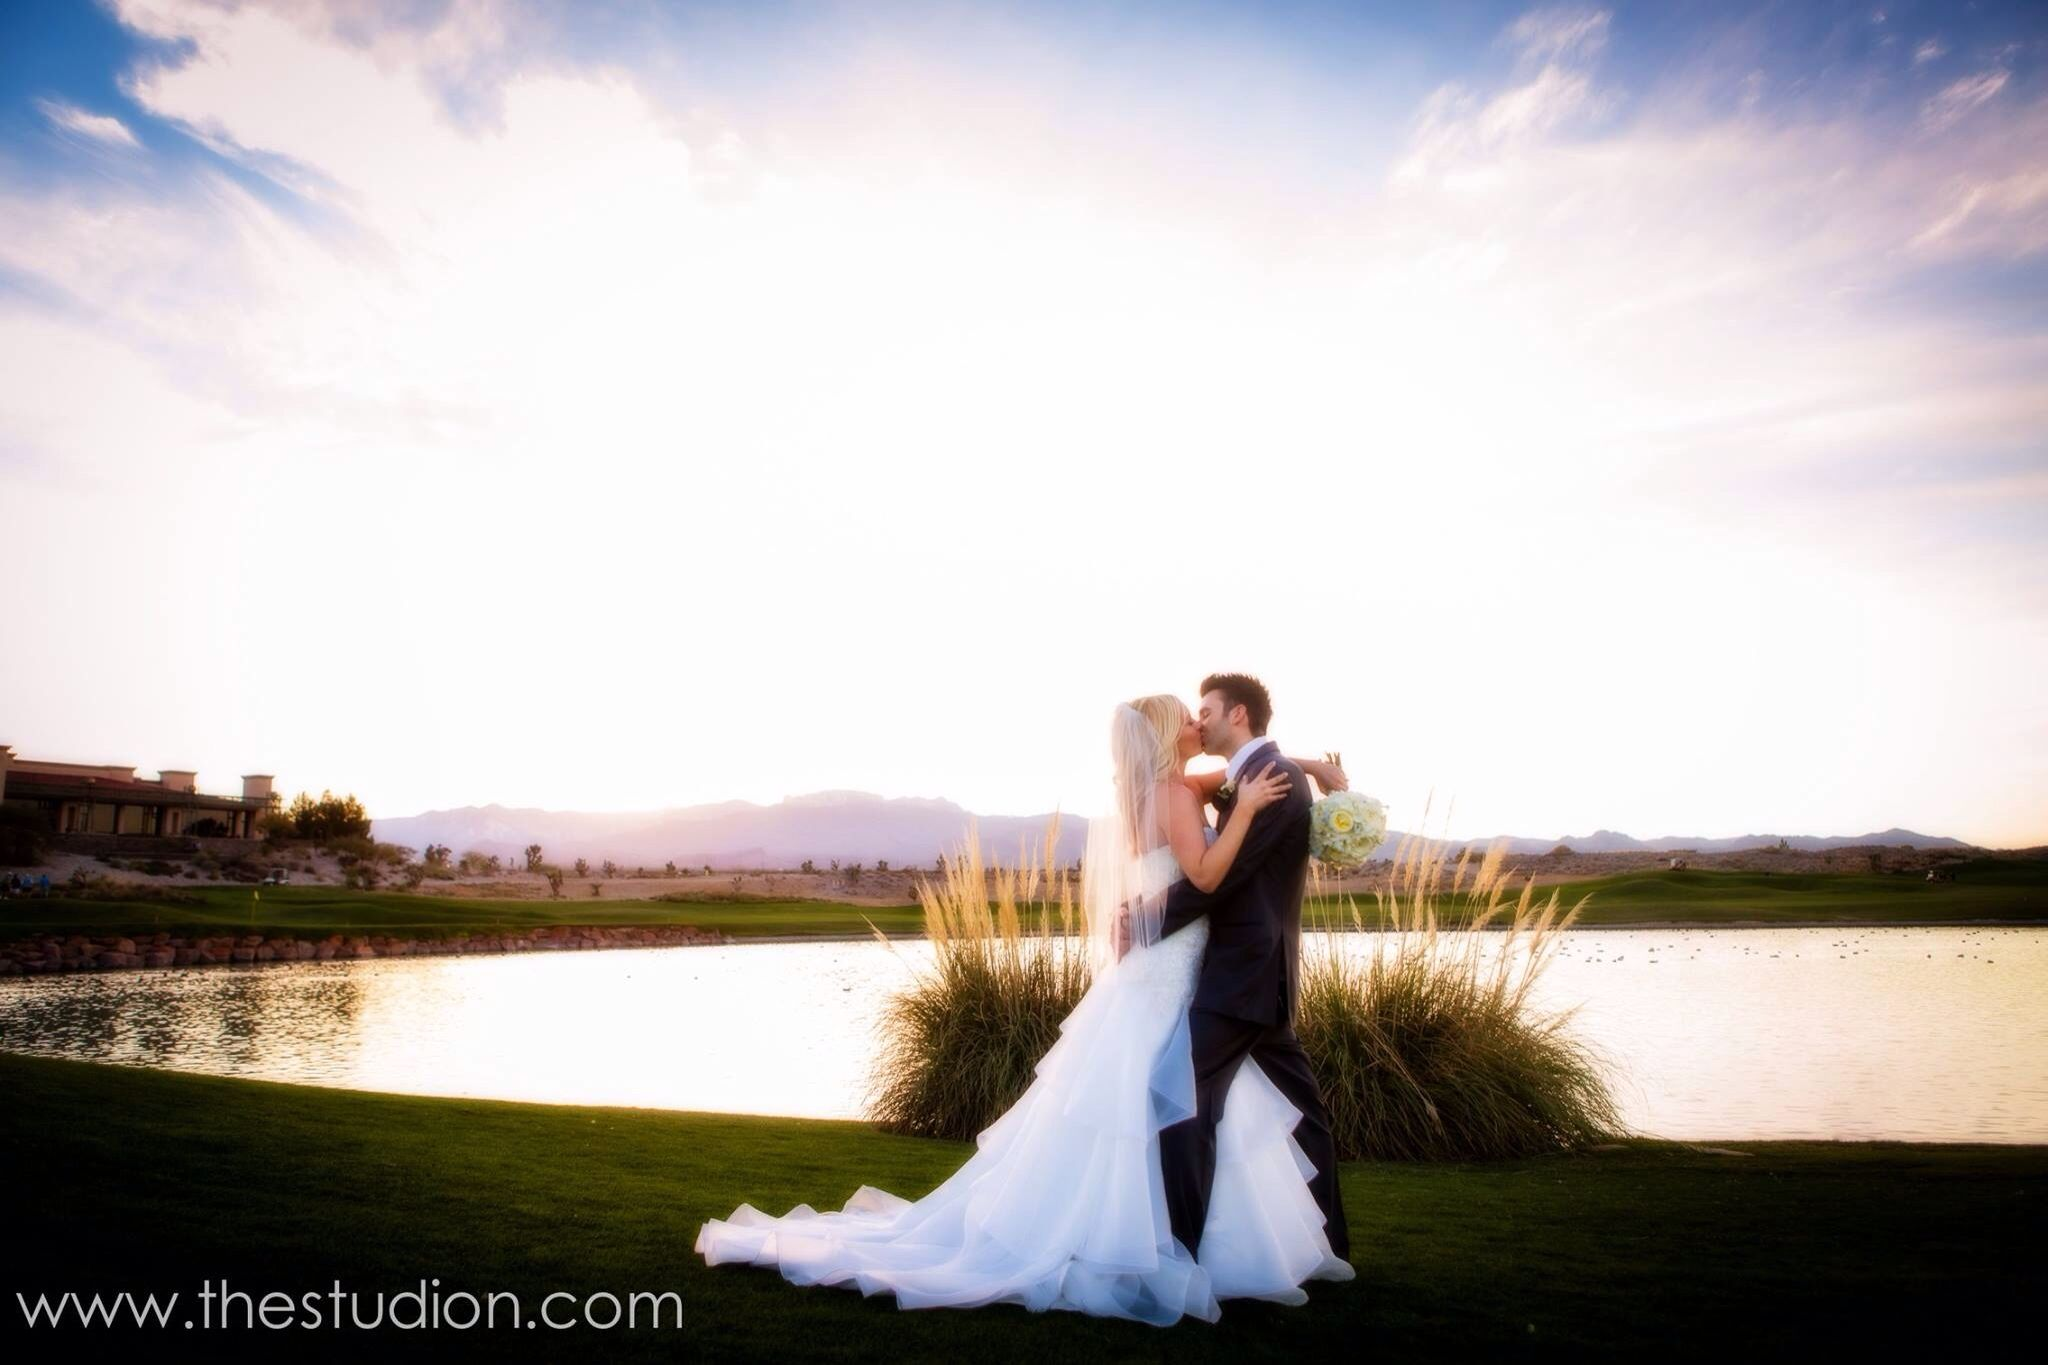 Las Vegas Wedding Photography Make Up Artistry Www Thestudion Bestofweddings Paiute Golf Resort Weddings Peterspartyof2 Gorgeous Bride